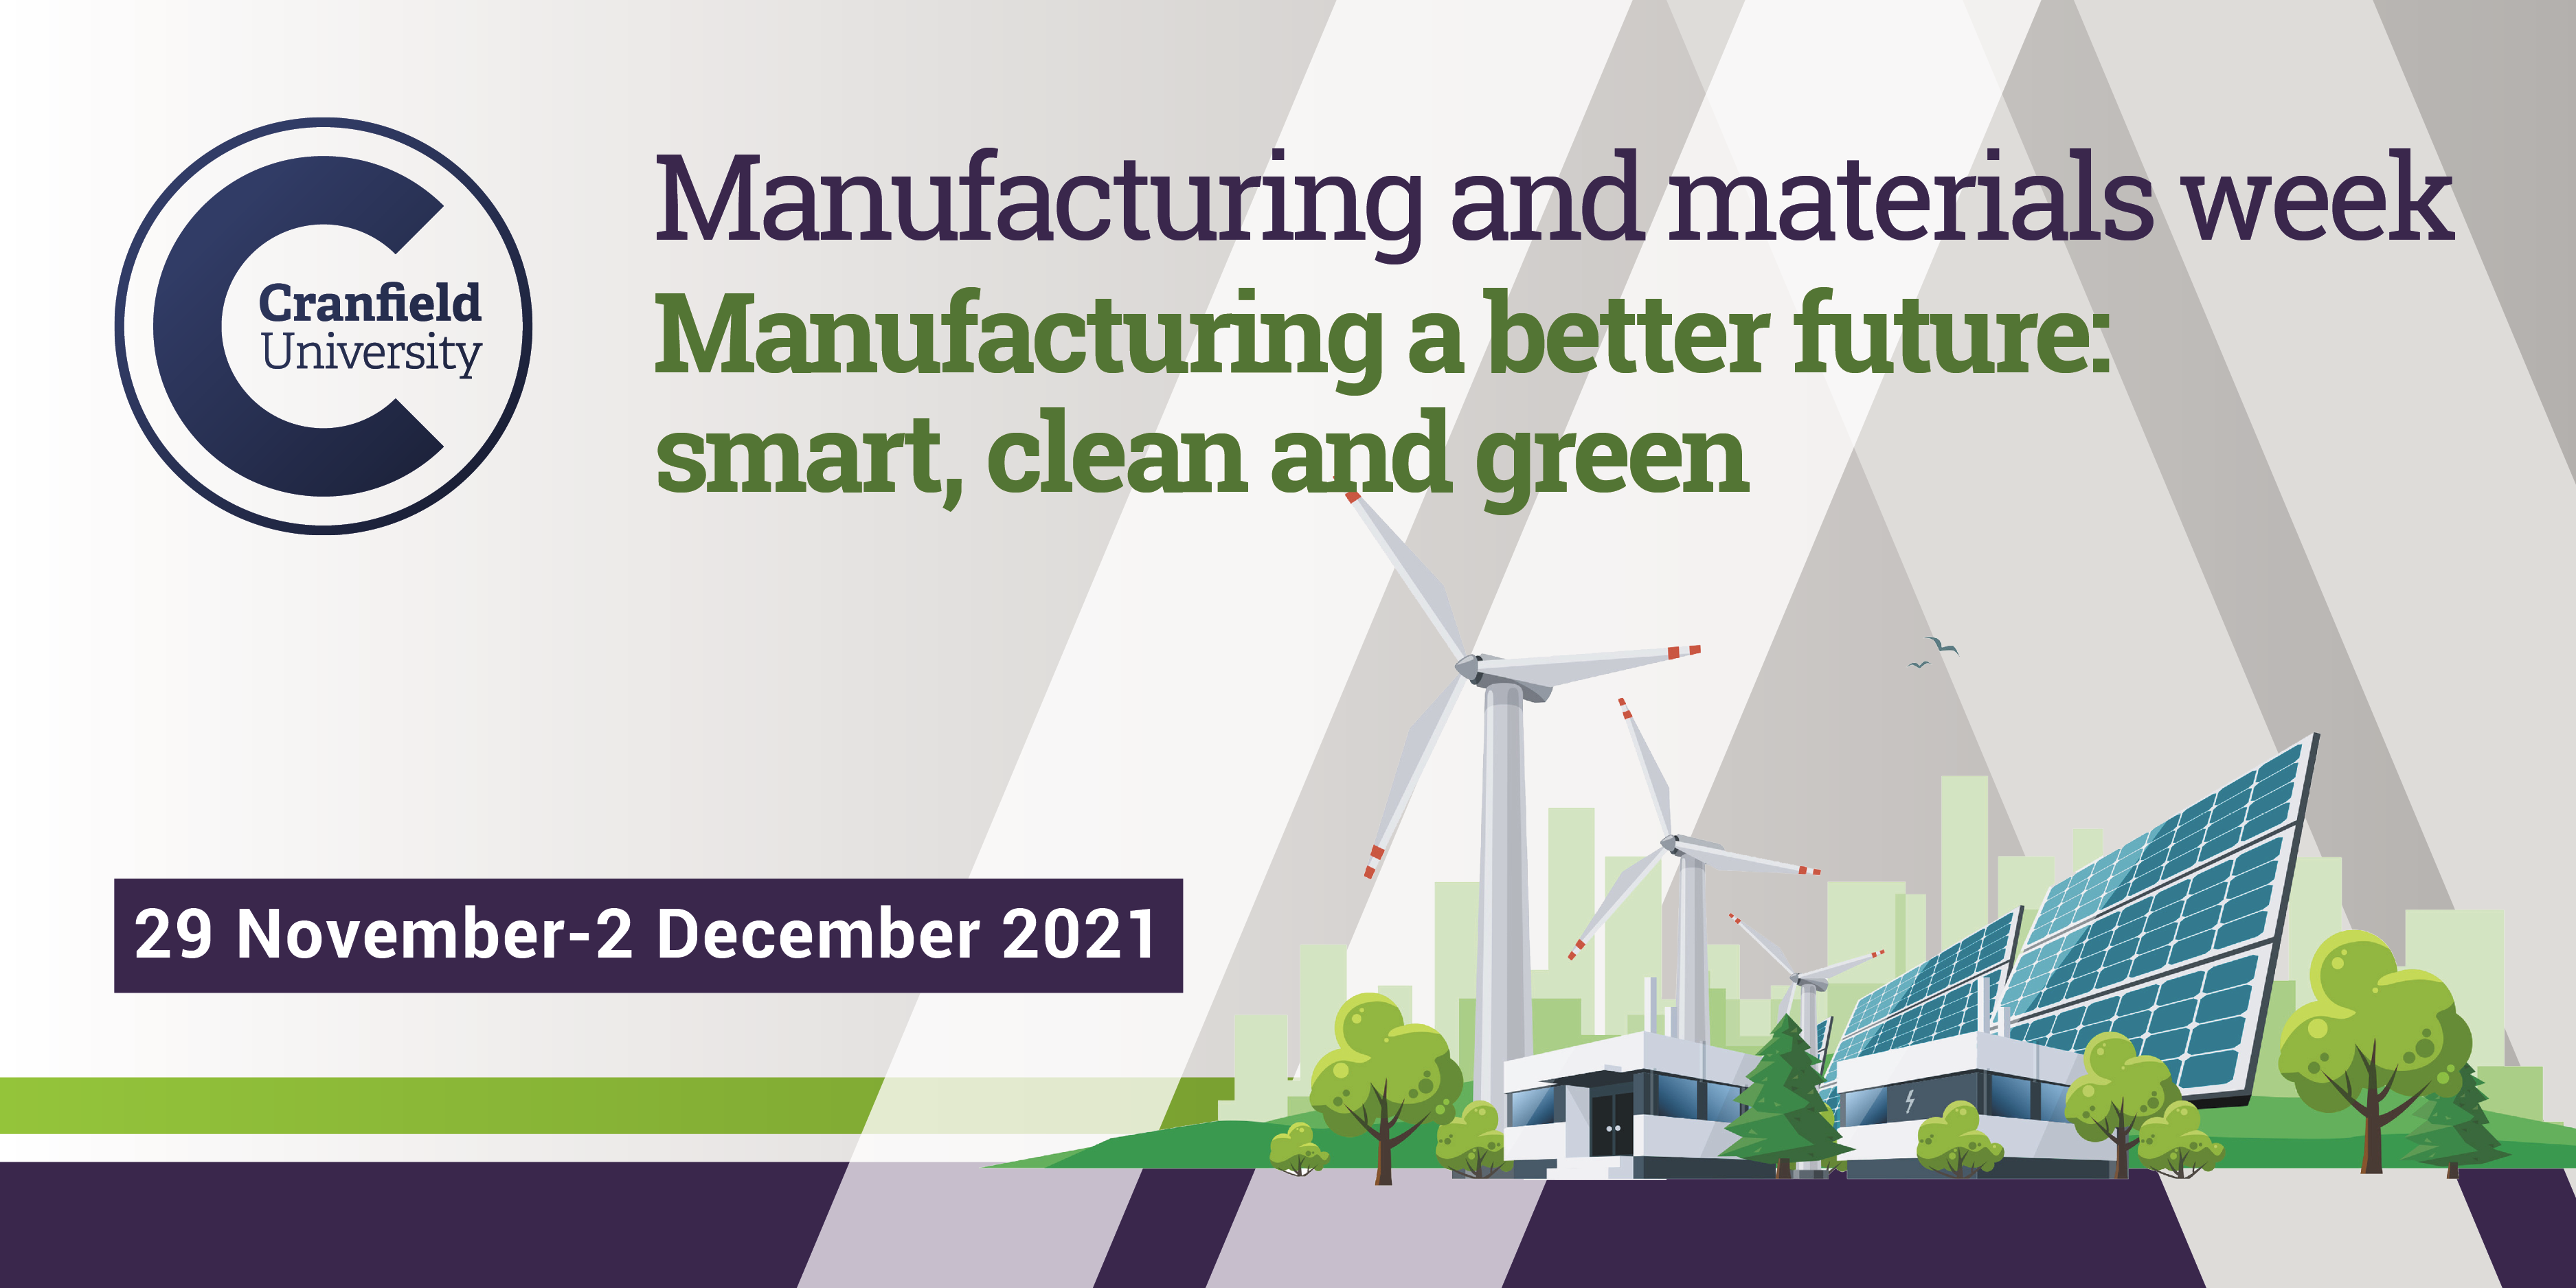 Welcome to Manufacturing and materials week 2021